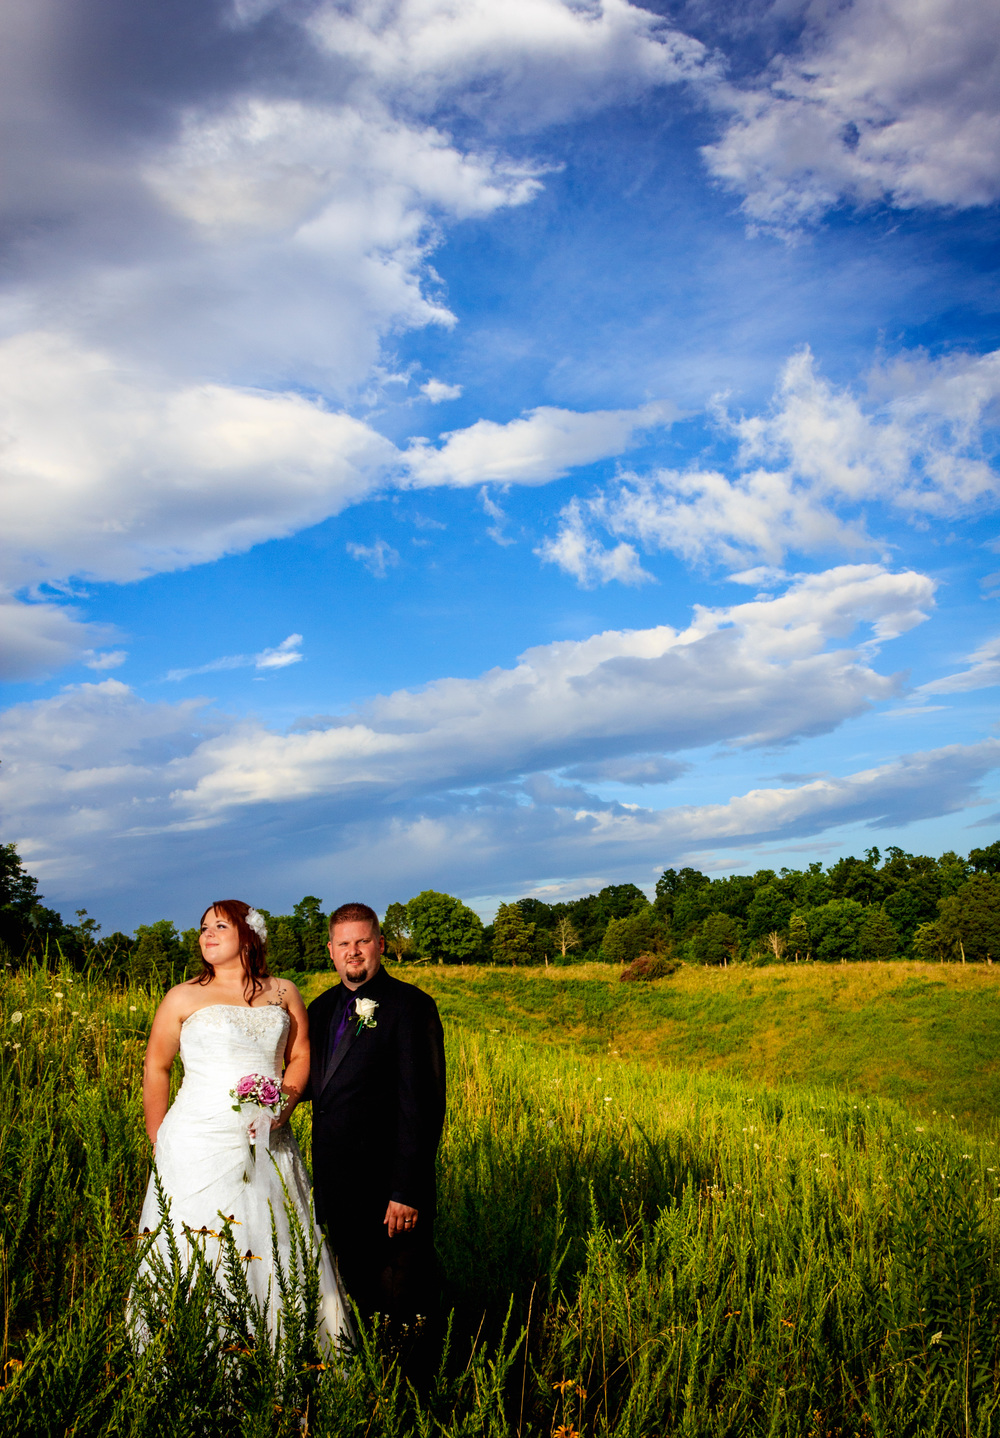 private-wedding-ceremony-gatlinburg-smokies.jpg